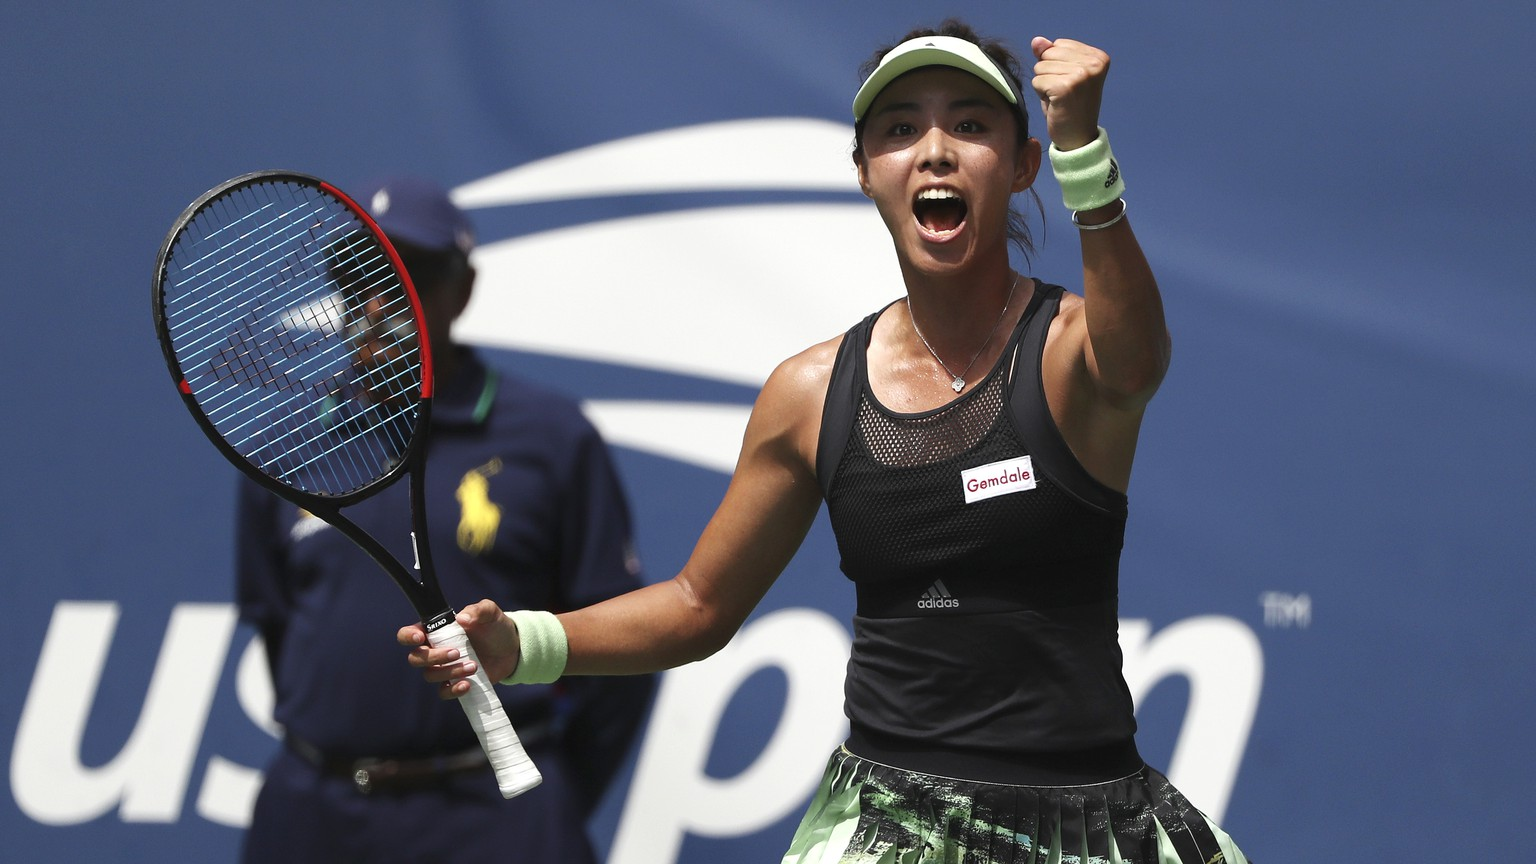 Qiang Wang, of China, reacts after defeating Ashleigh Barty, of Australia, during round four of the US Open tennis championships Sunday, Sept. 1, 2019, in New York. (AP Photo/Kevin Hagen)